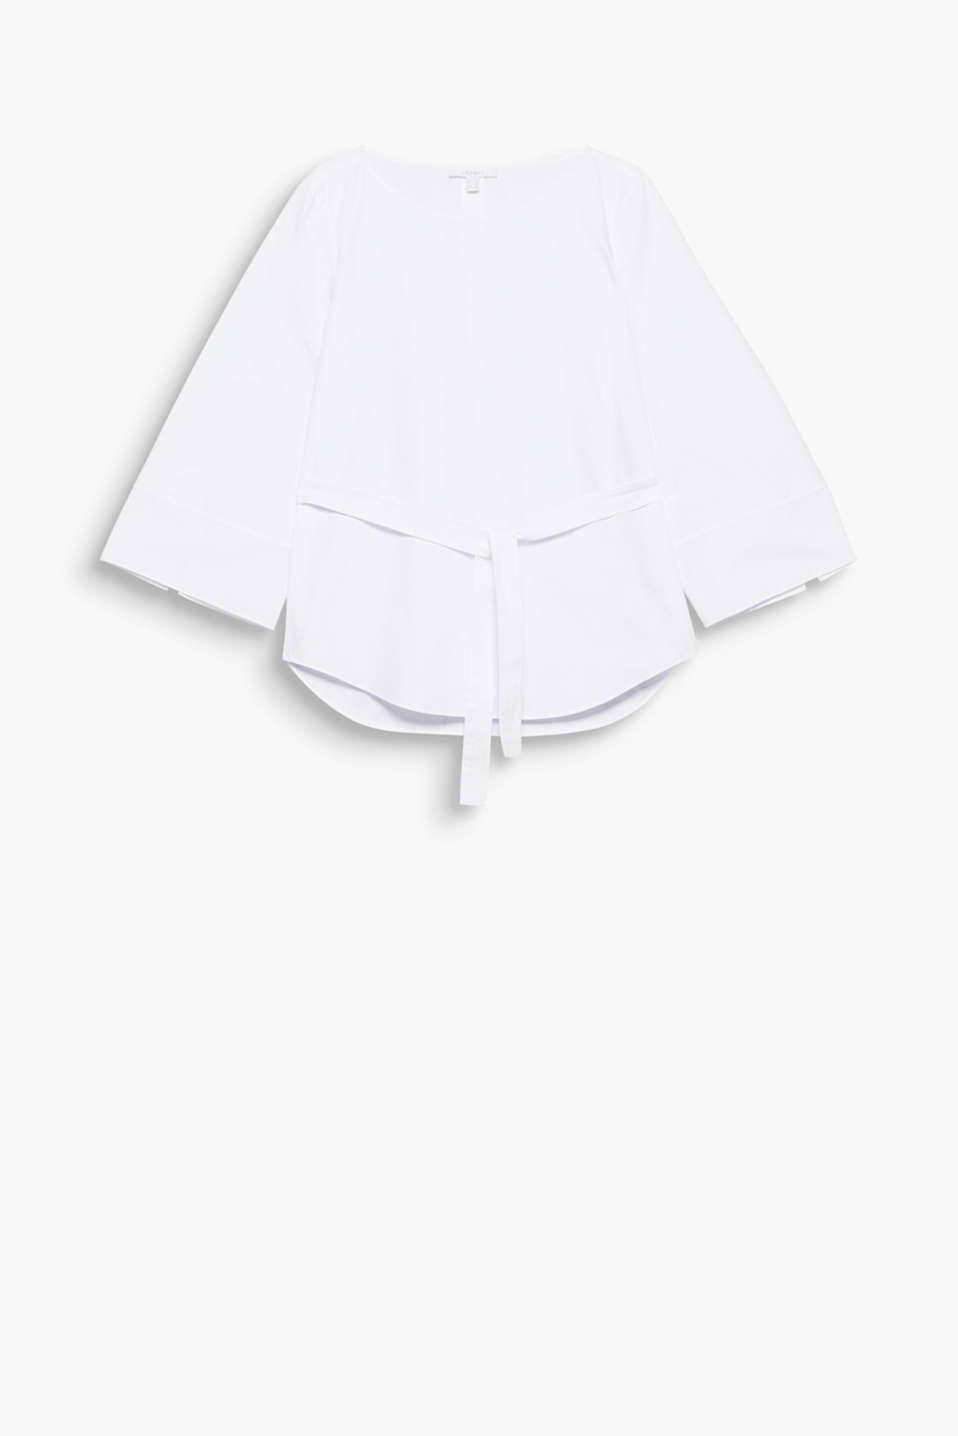 Understated, stylish and versatile: blouse in cotton poplin with an accentuated tie-around belt